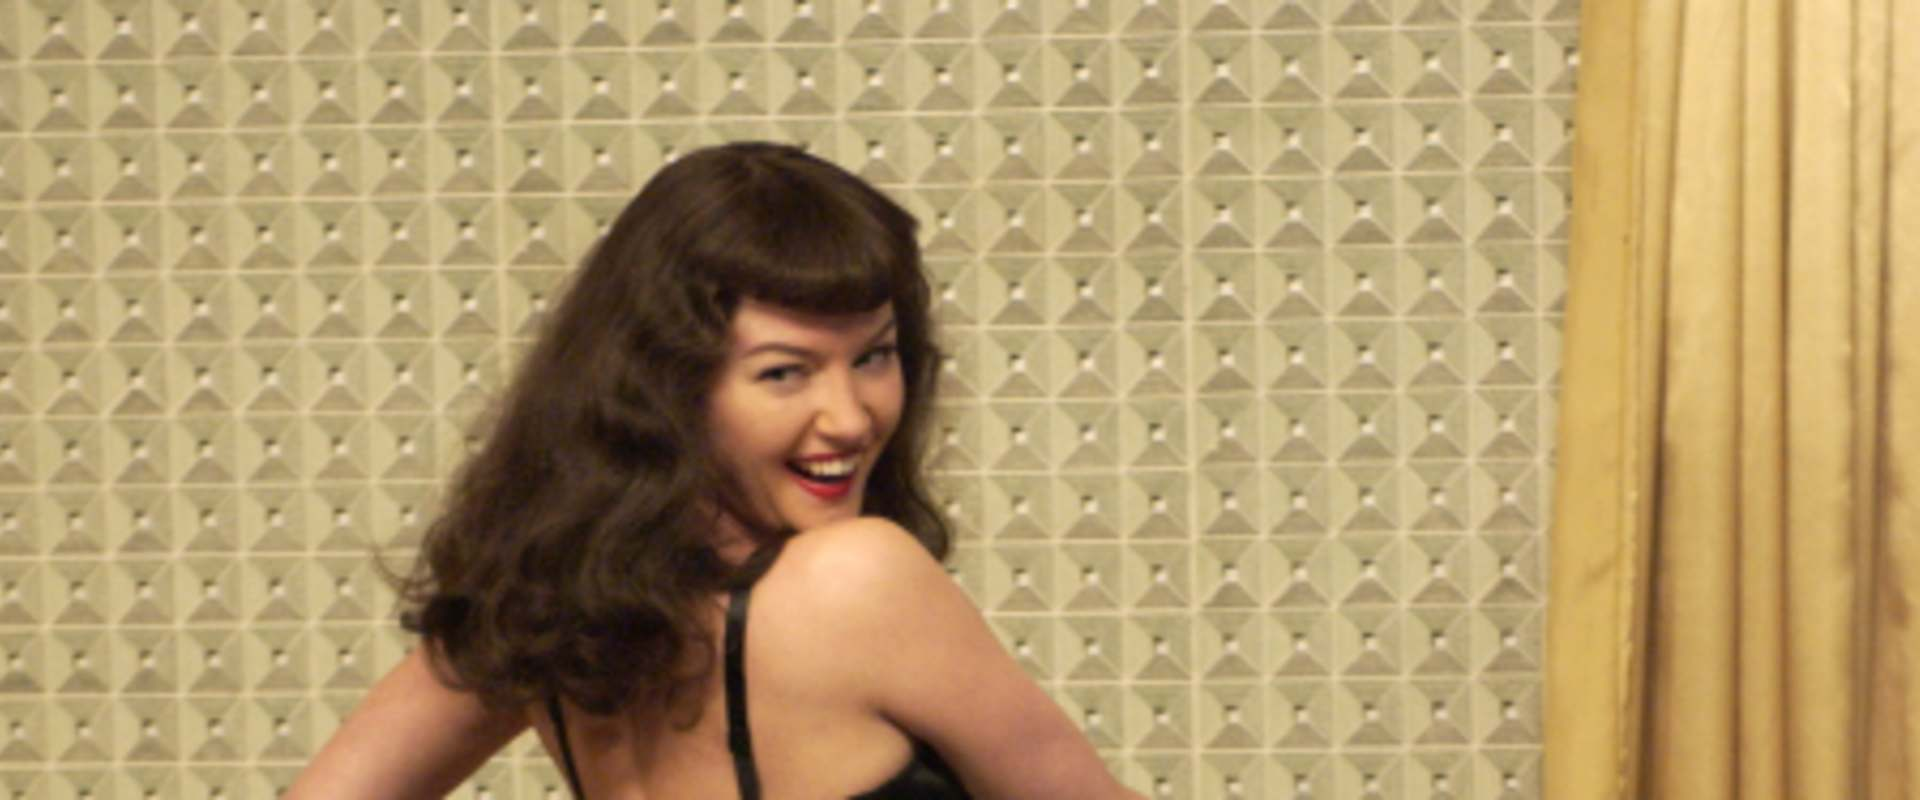 The Notorious Bettie Page background 2